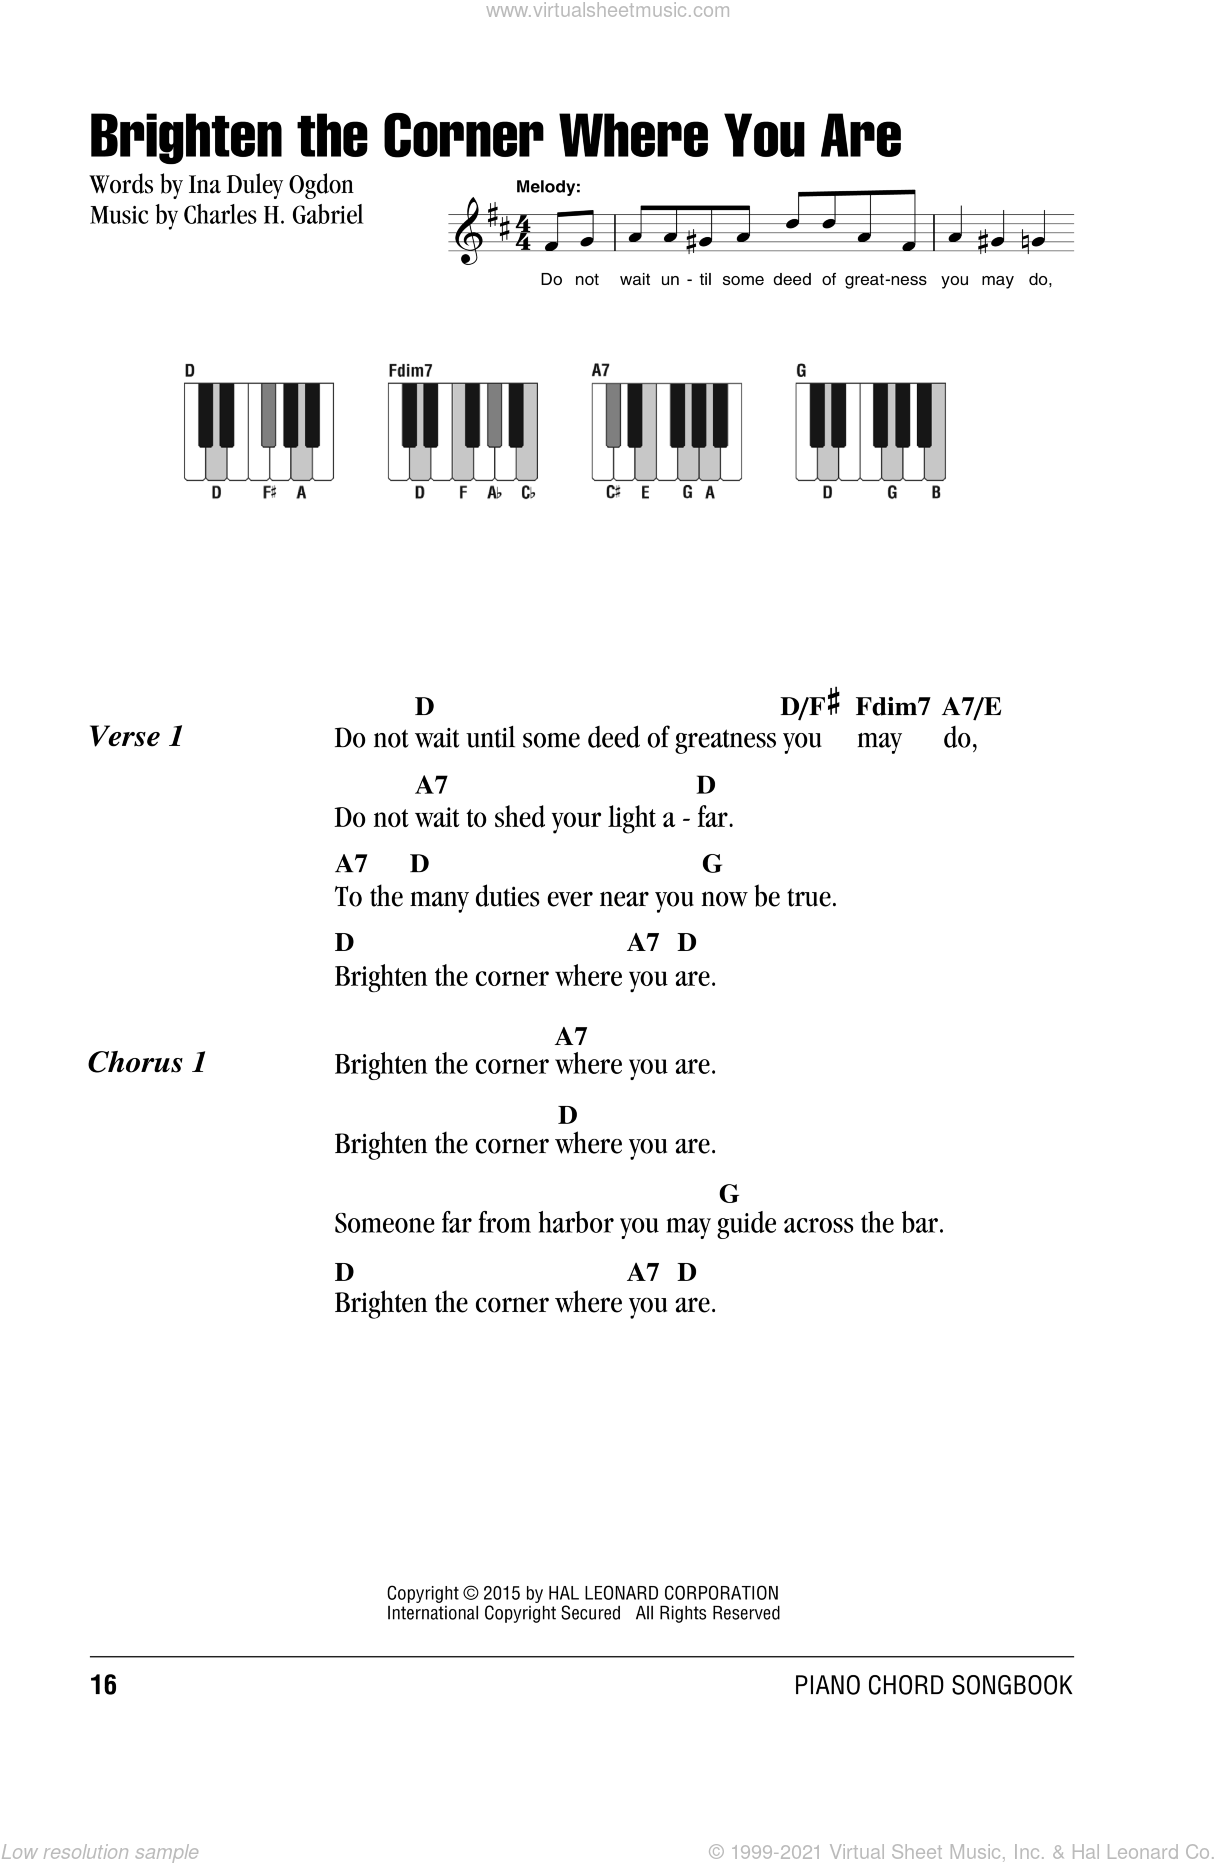 Brighten The Corner Where You Are sheet music for piano solo (chords, lyrics, melody) by Ina Duley Ogdon and Charles H. Gabriel. Score Image Preview.